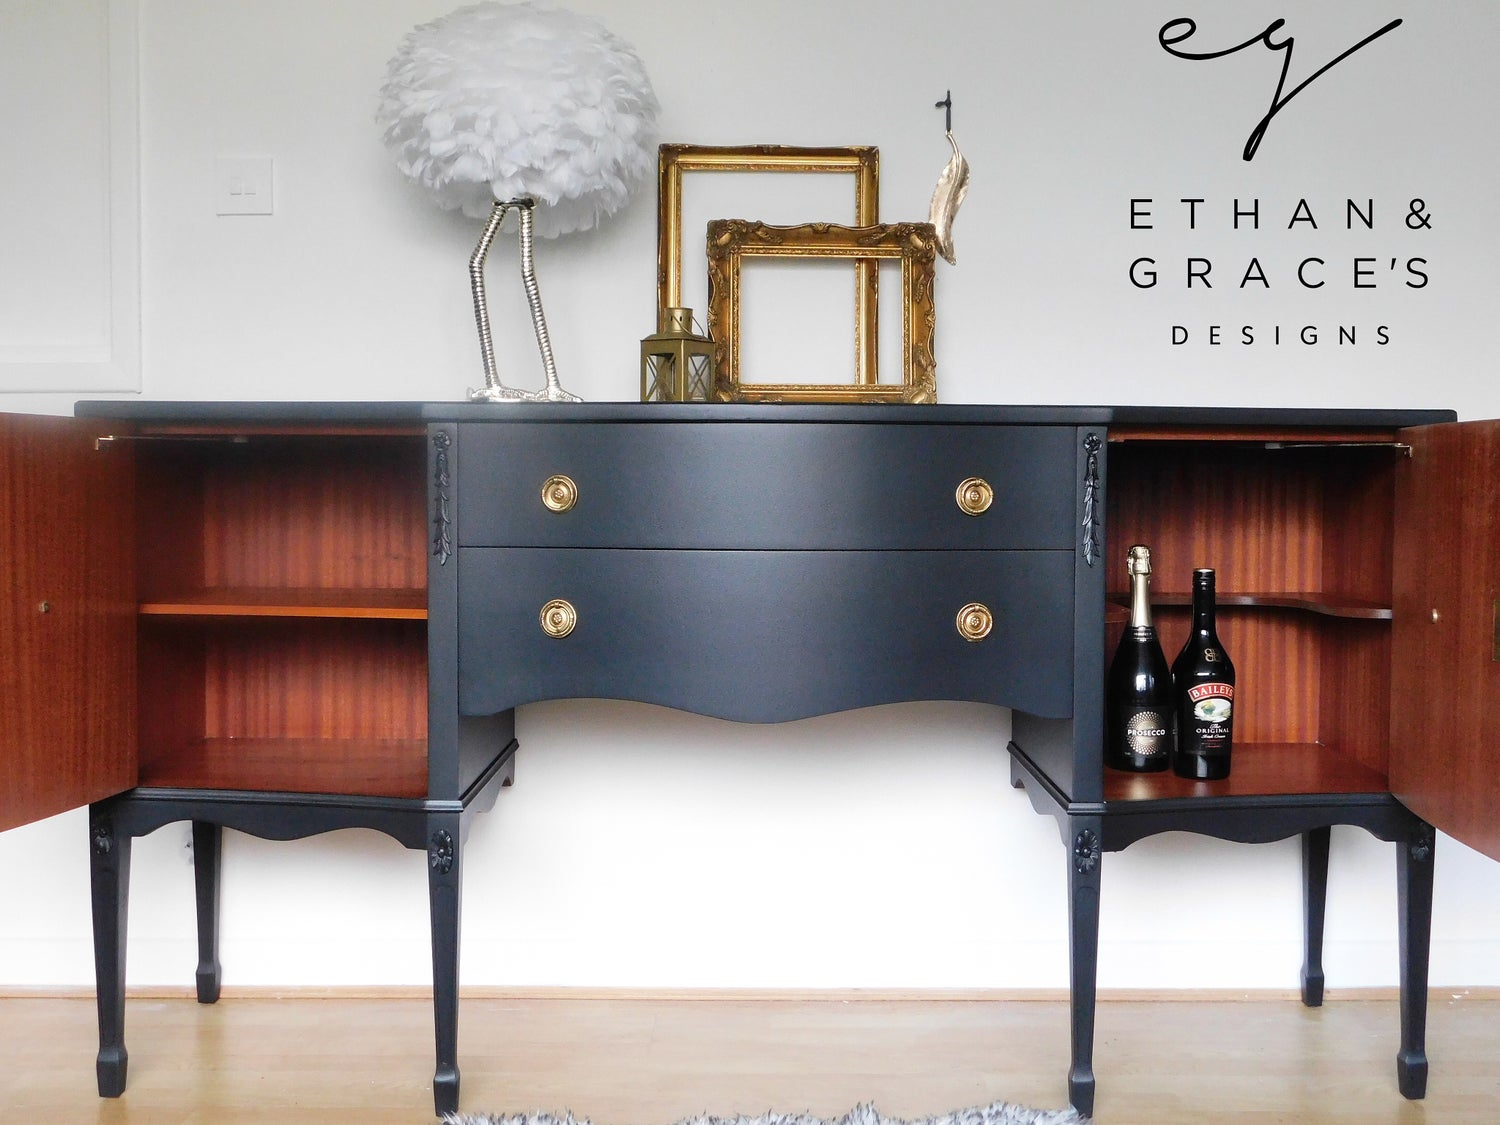 Image of A black sideboard with 2 working keys